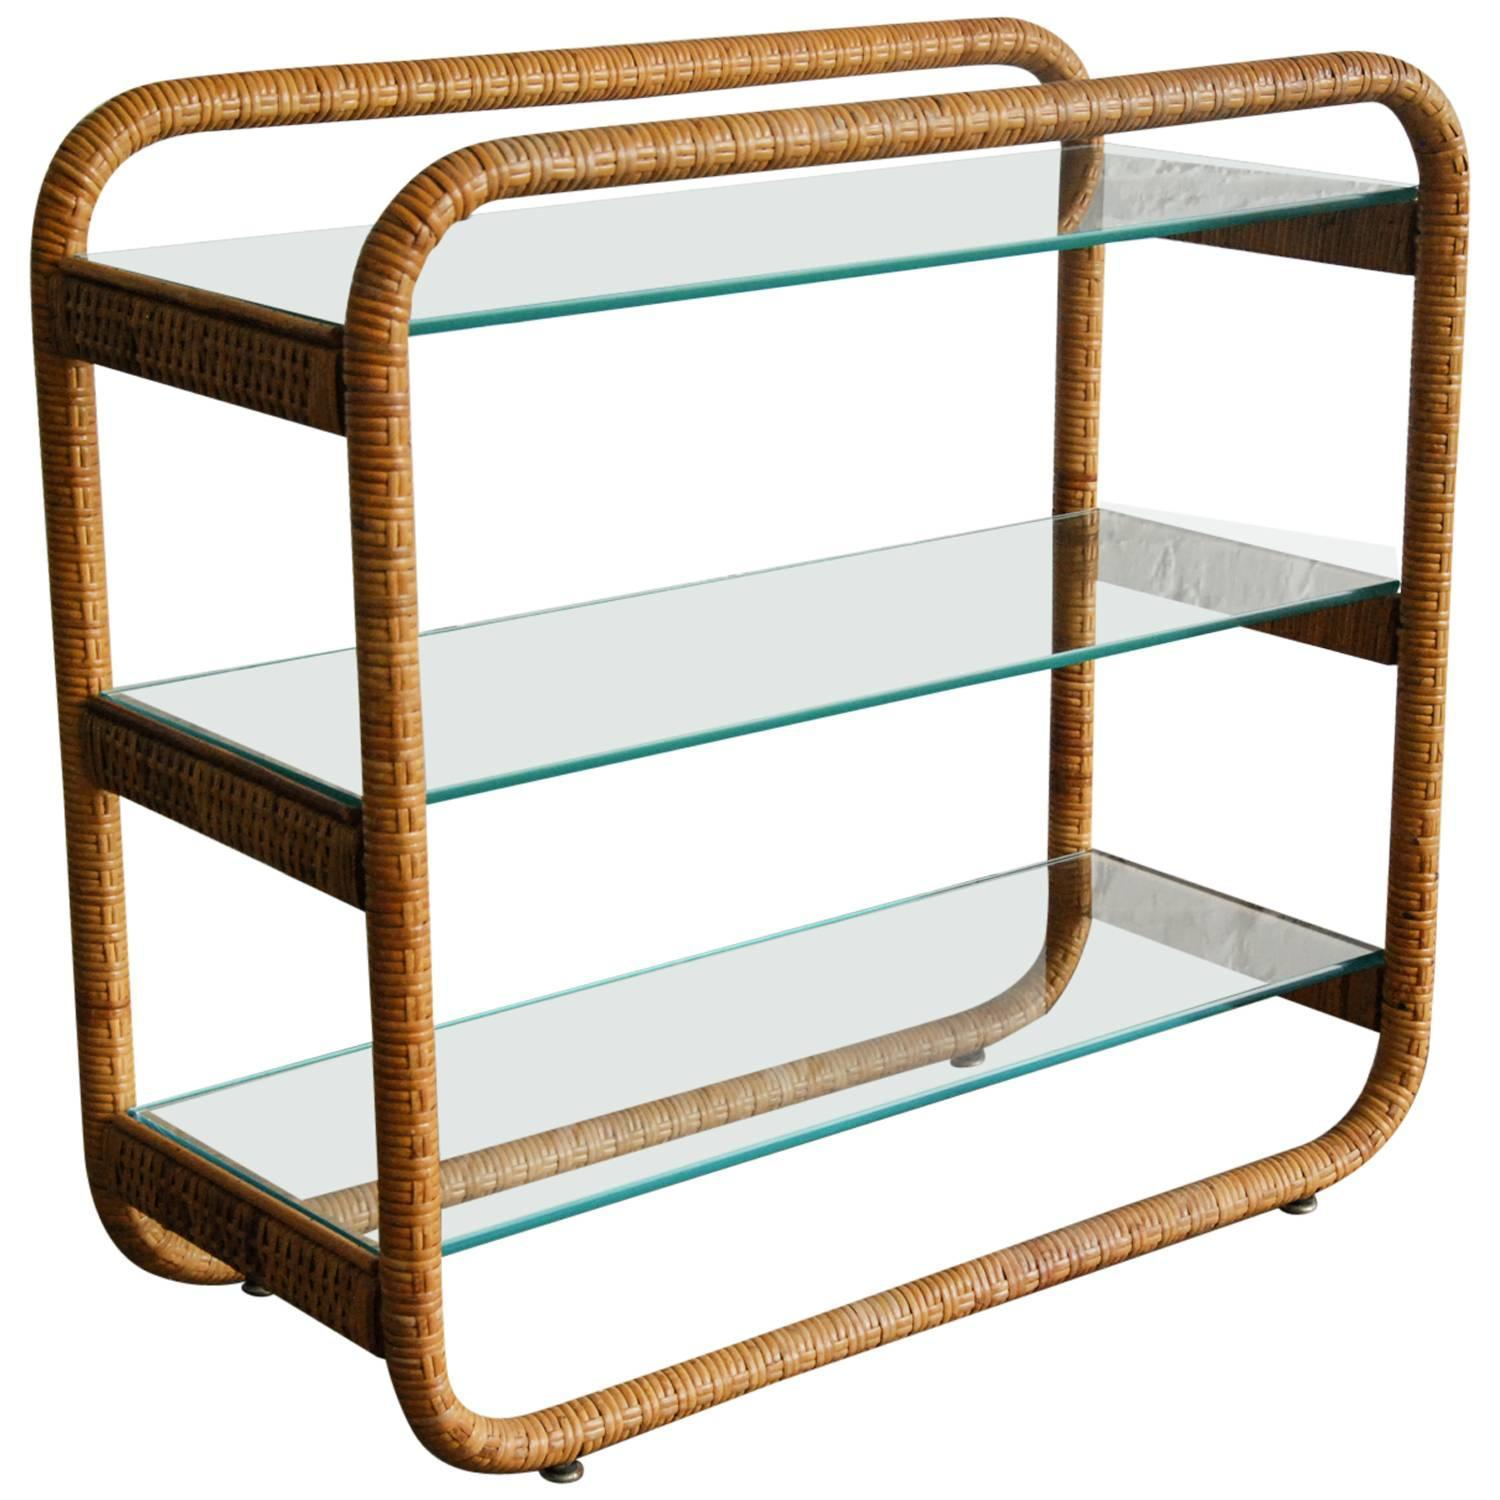 rattan and glass tag re italy circa 1970 for sale at 1stdibs. Black Bedroom Furniture Sets. Home Design Ideas